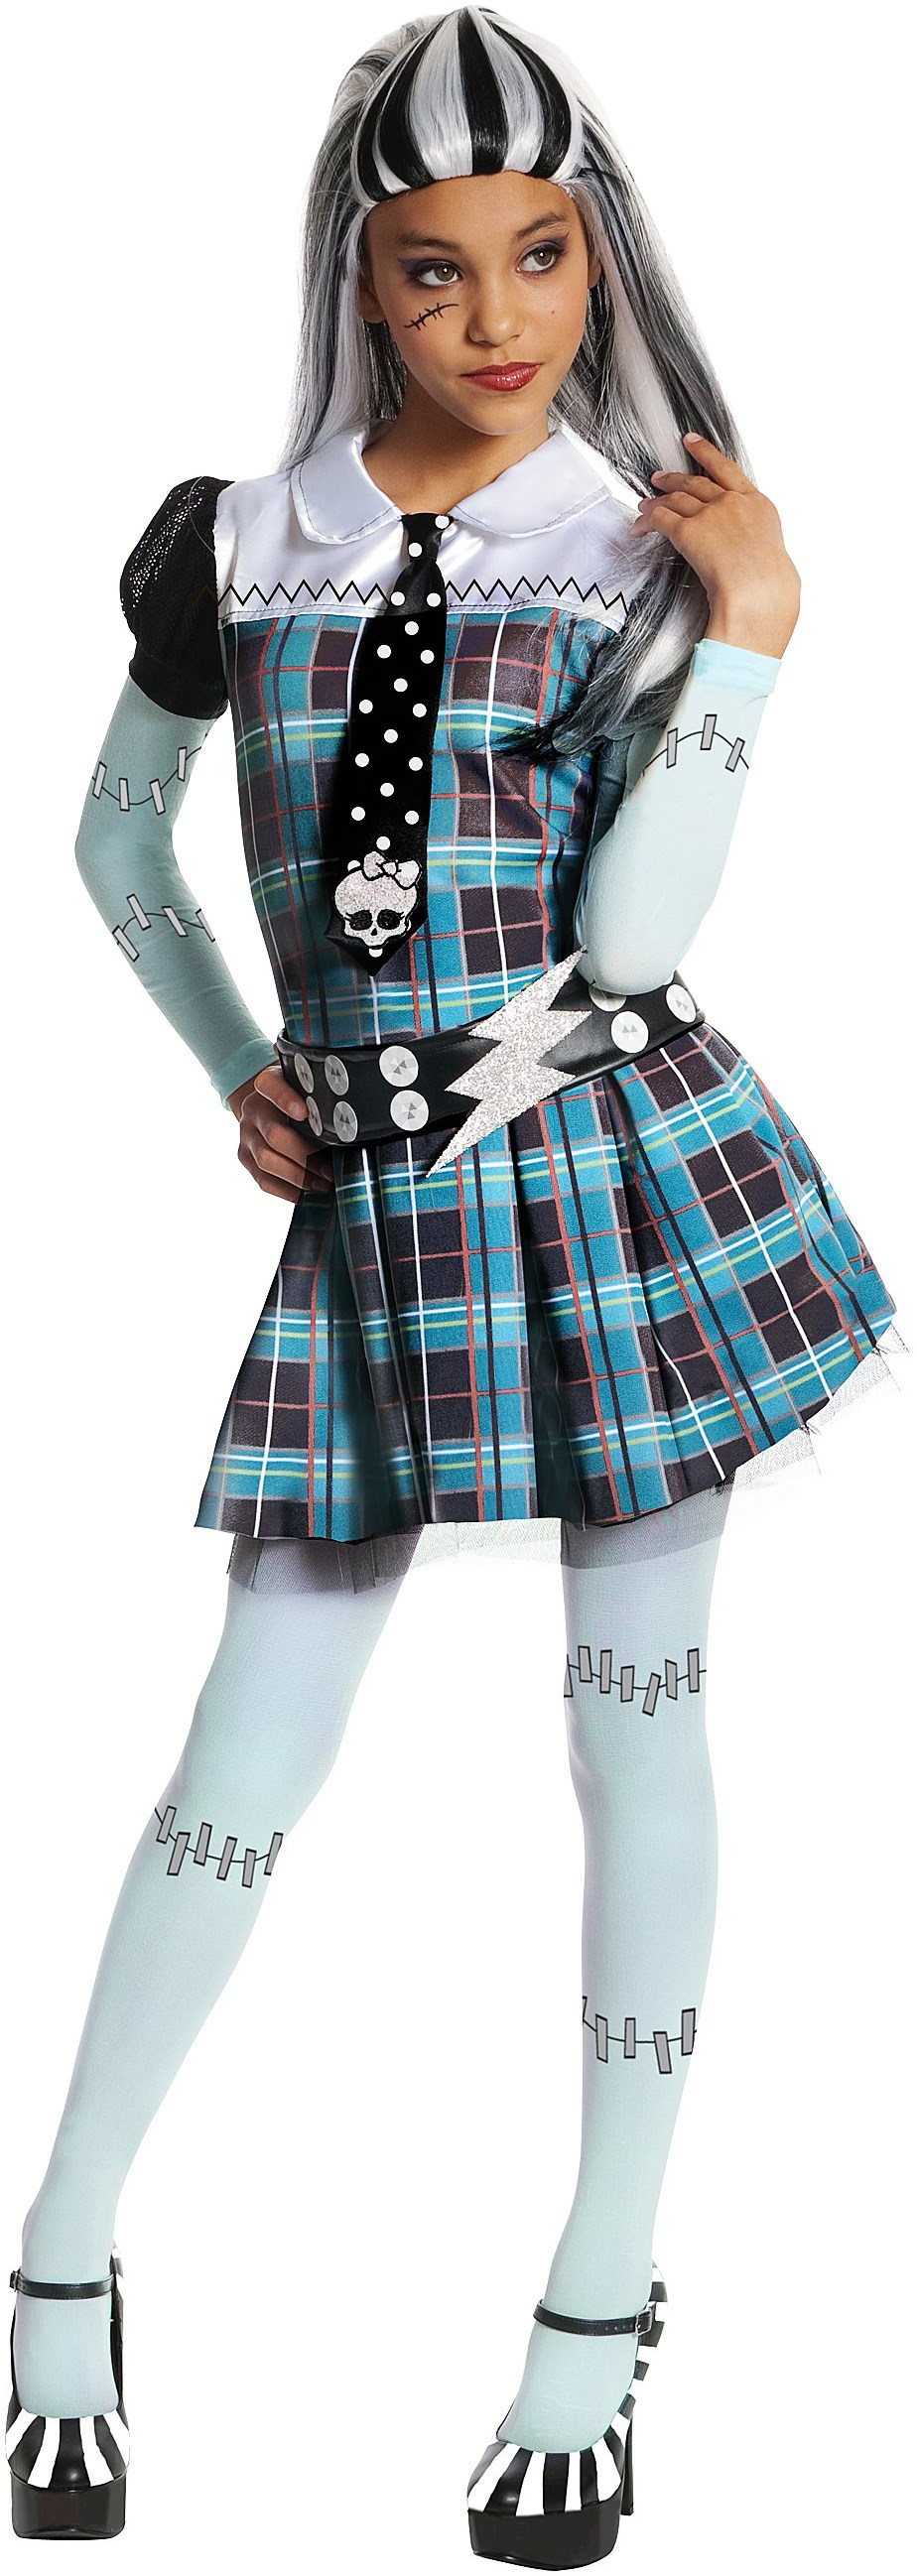 Monster High - Frankie Stein Child Costume Large (12-14)